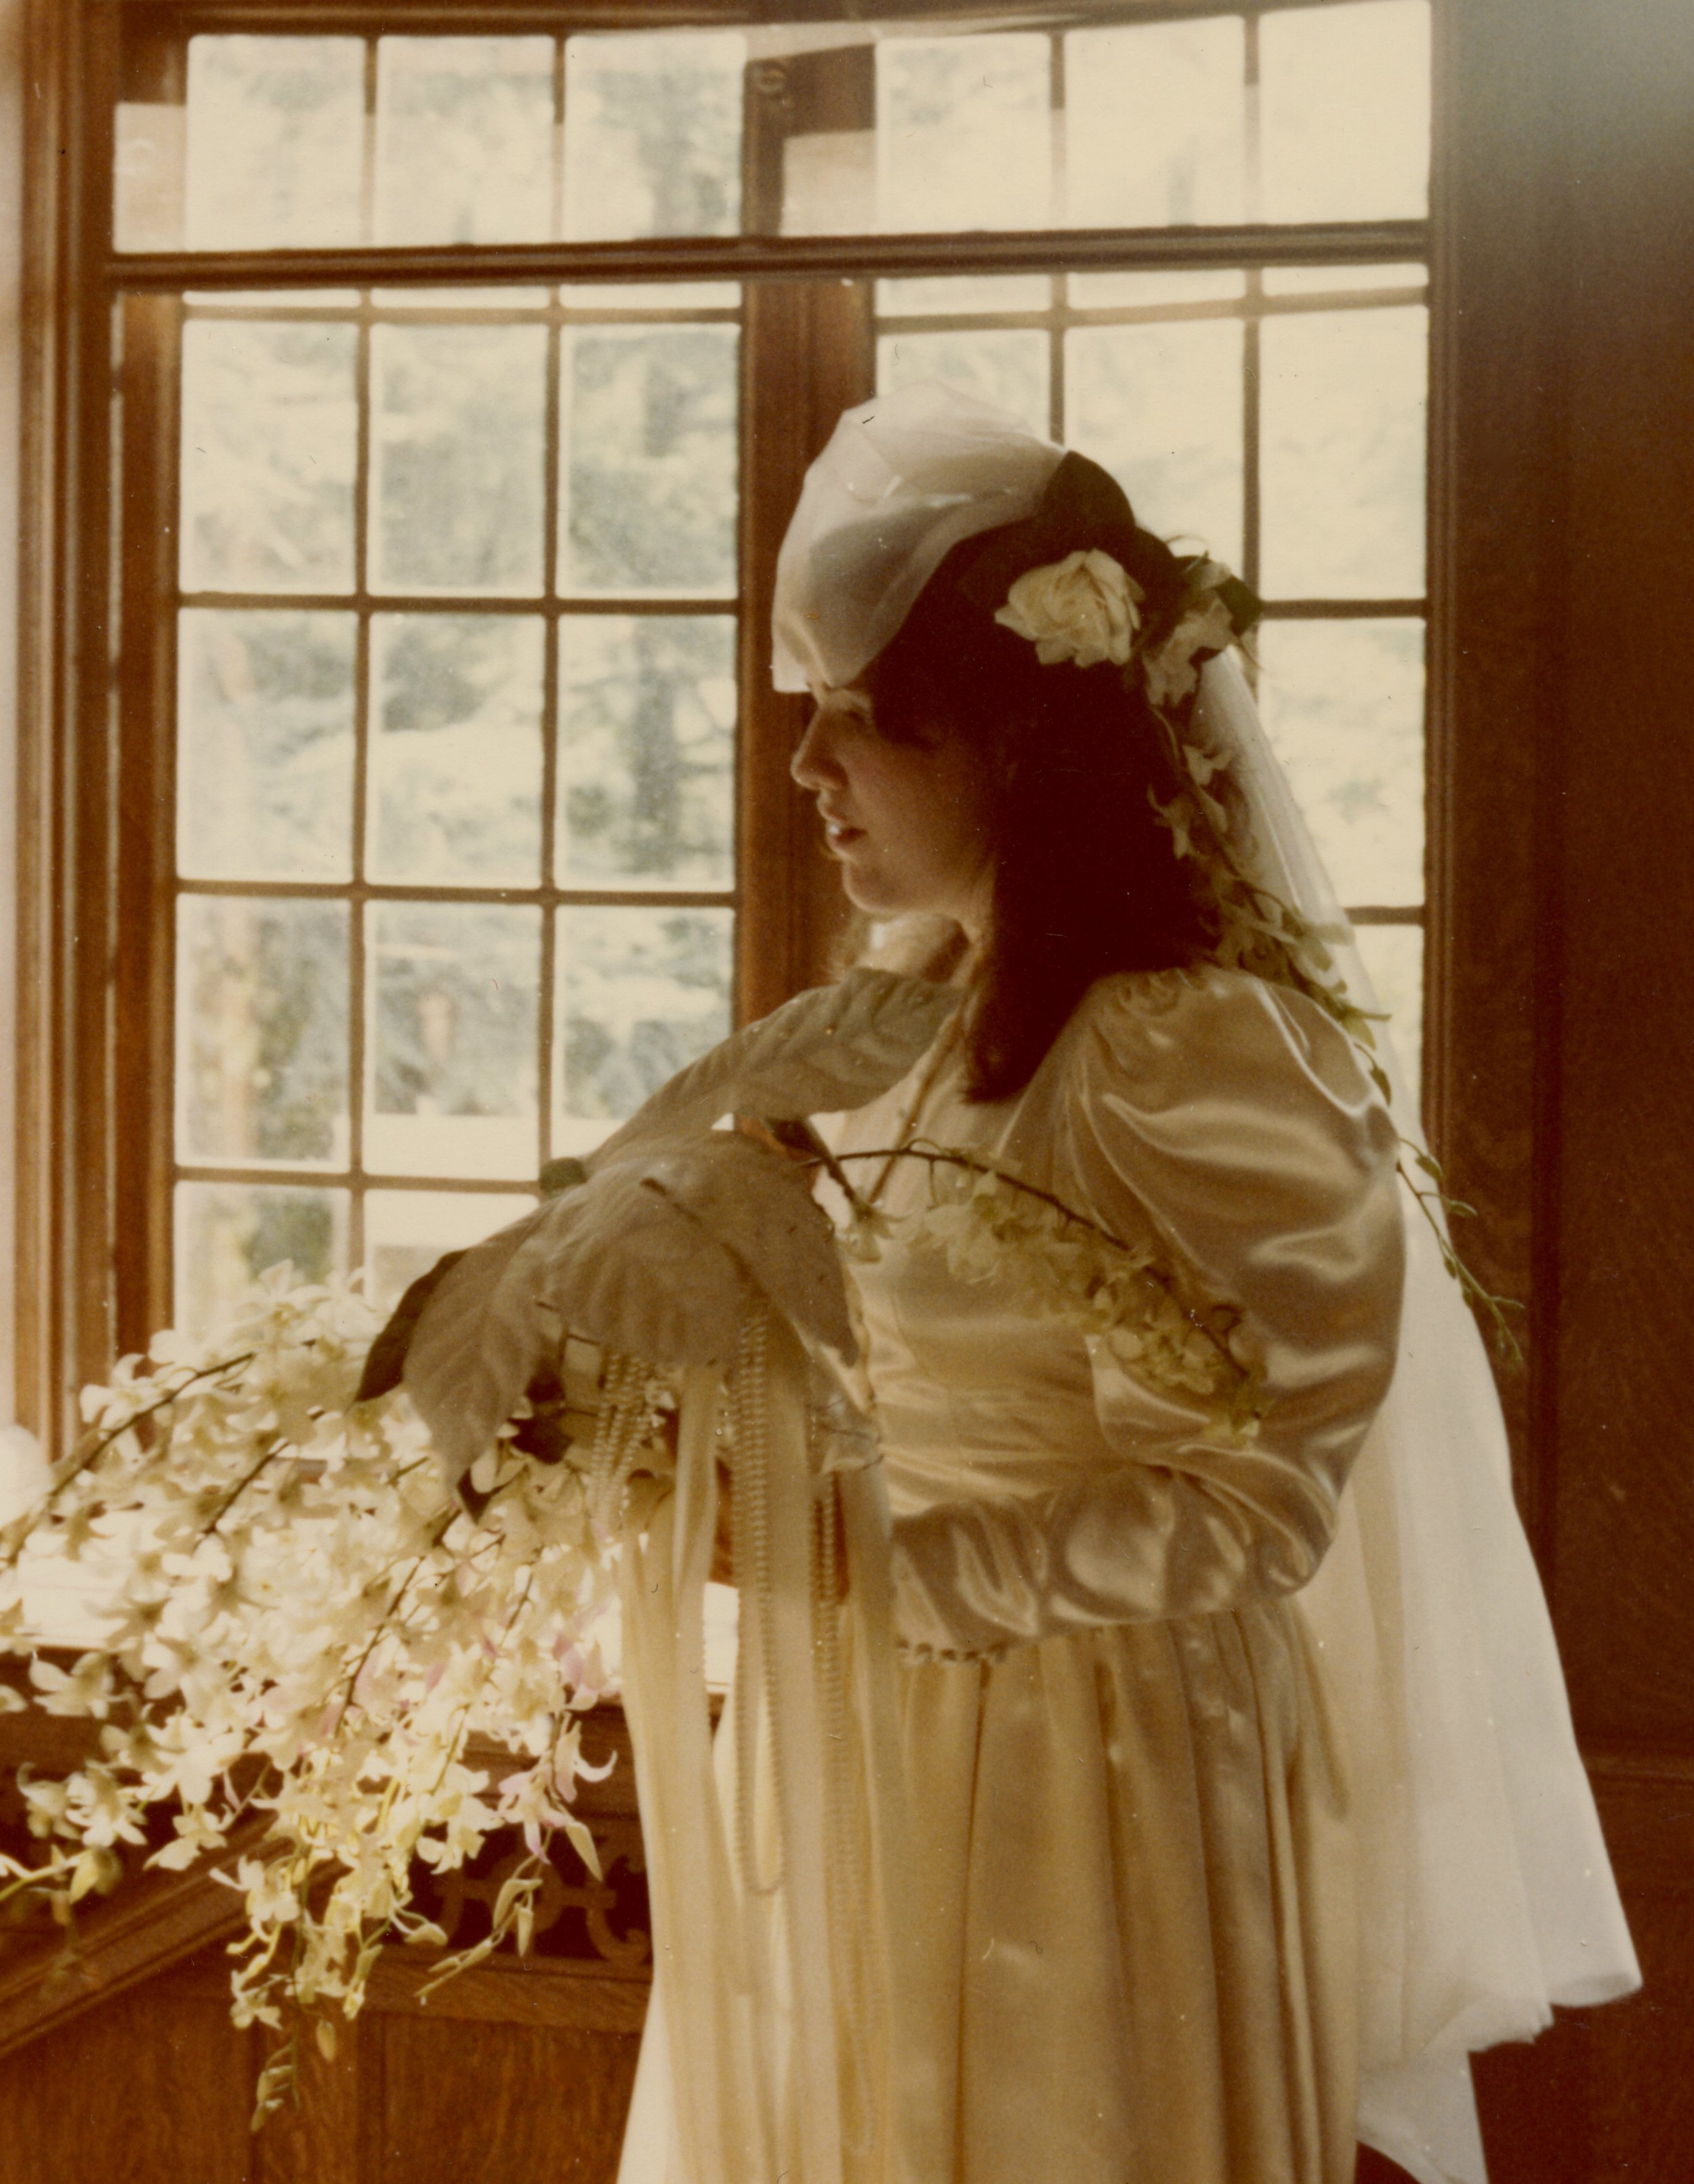 Ellen as bride in window.jpg